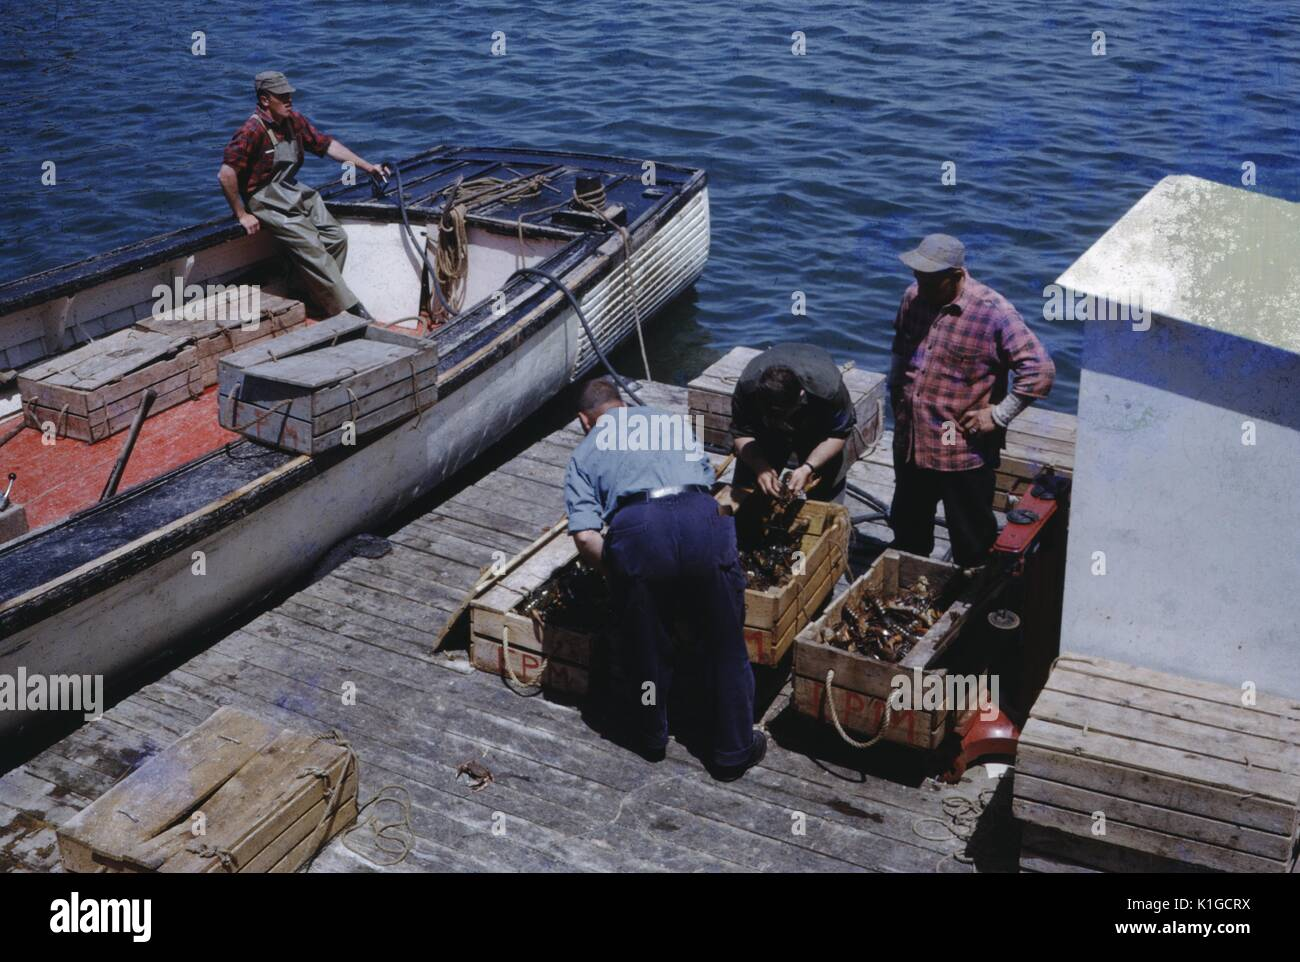 Four Fishermen Unloading Their Catch From A Boat Docked On A Wharf